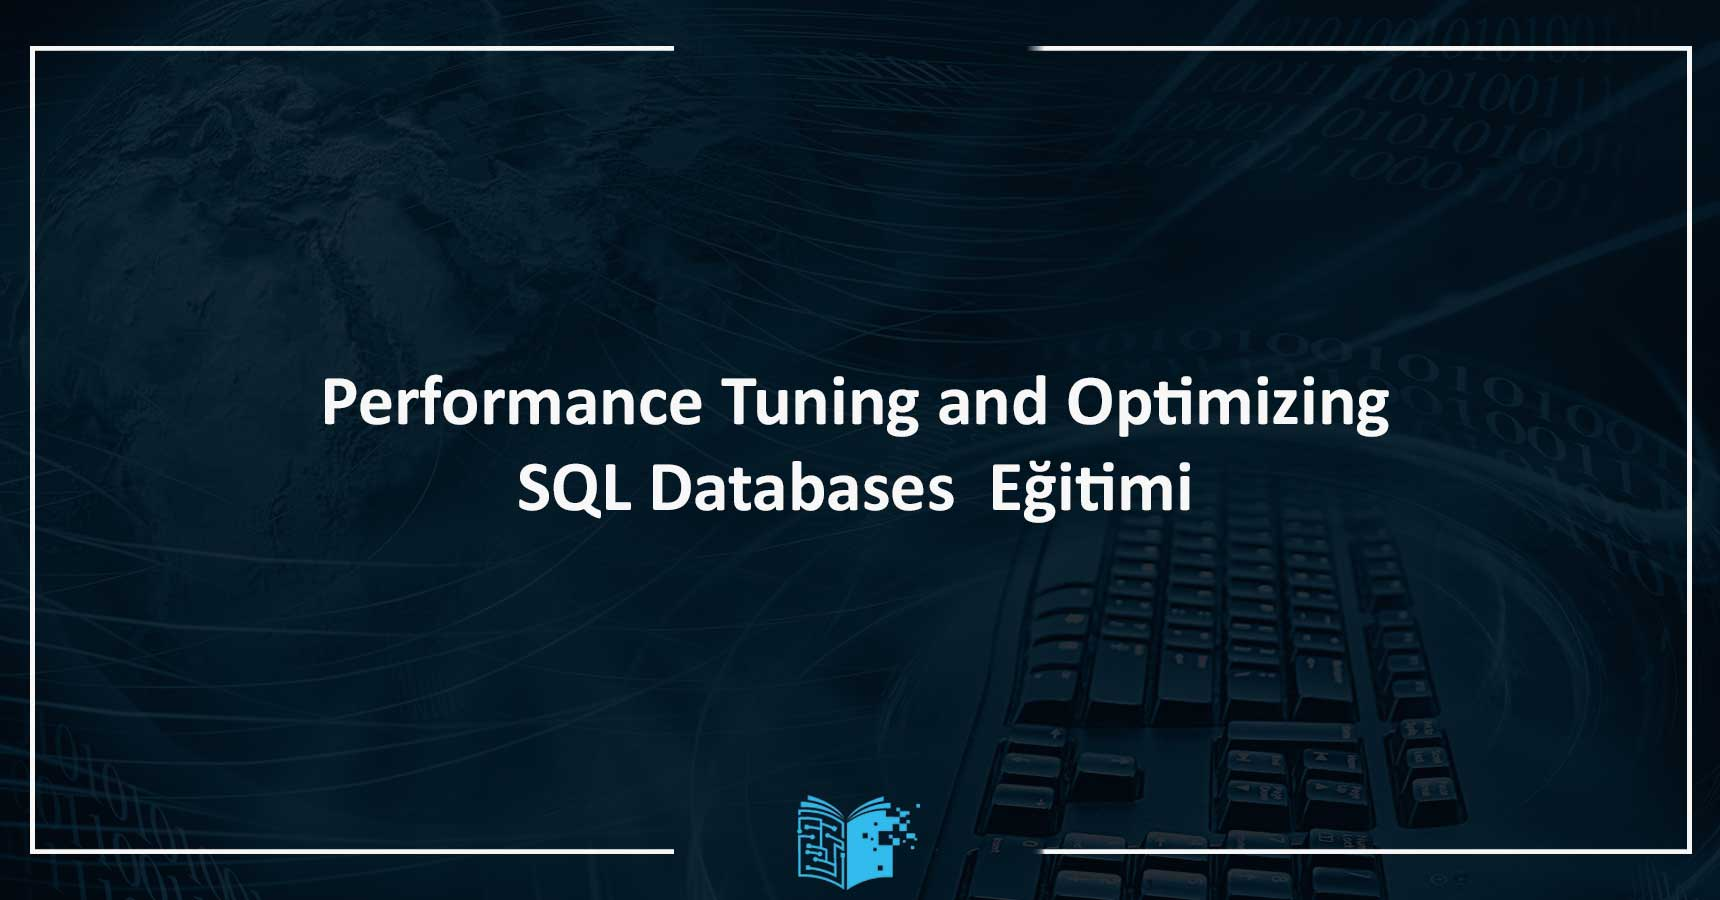 Performance Tuning and Optimizing SQL Databases